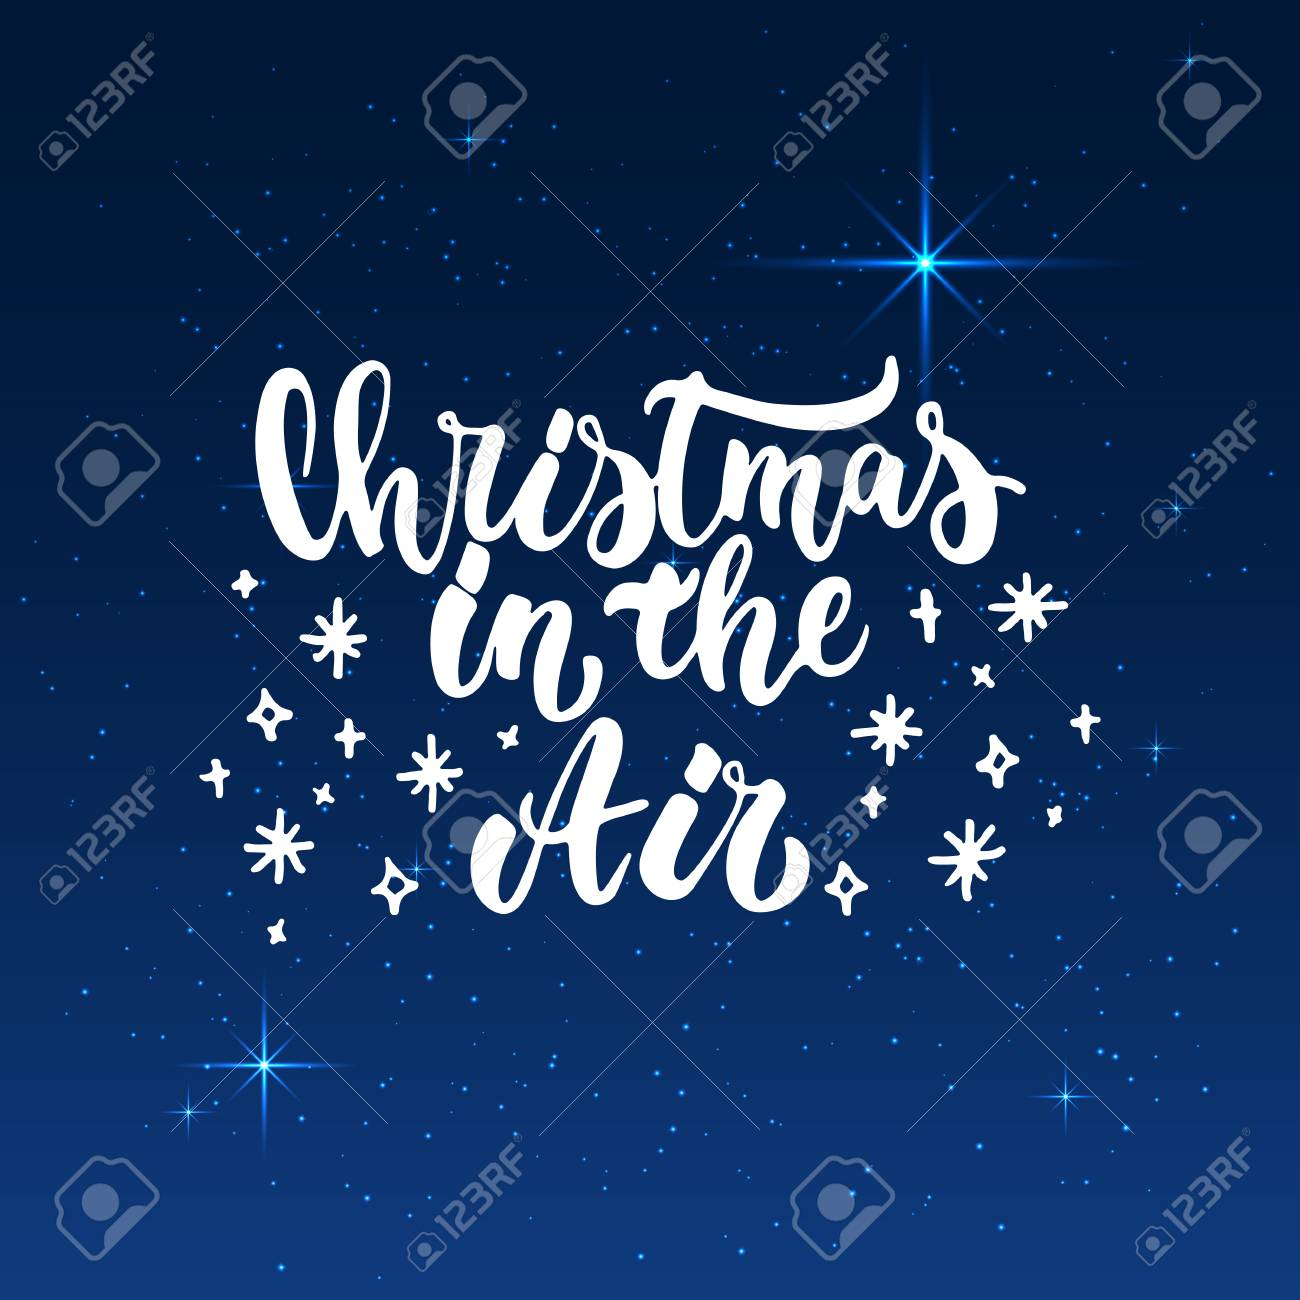 Christmas In The Air.Christmas In The Air Lettering Christmas And New Year Holiday